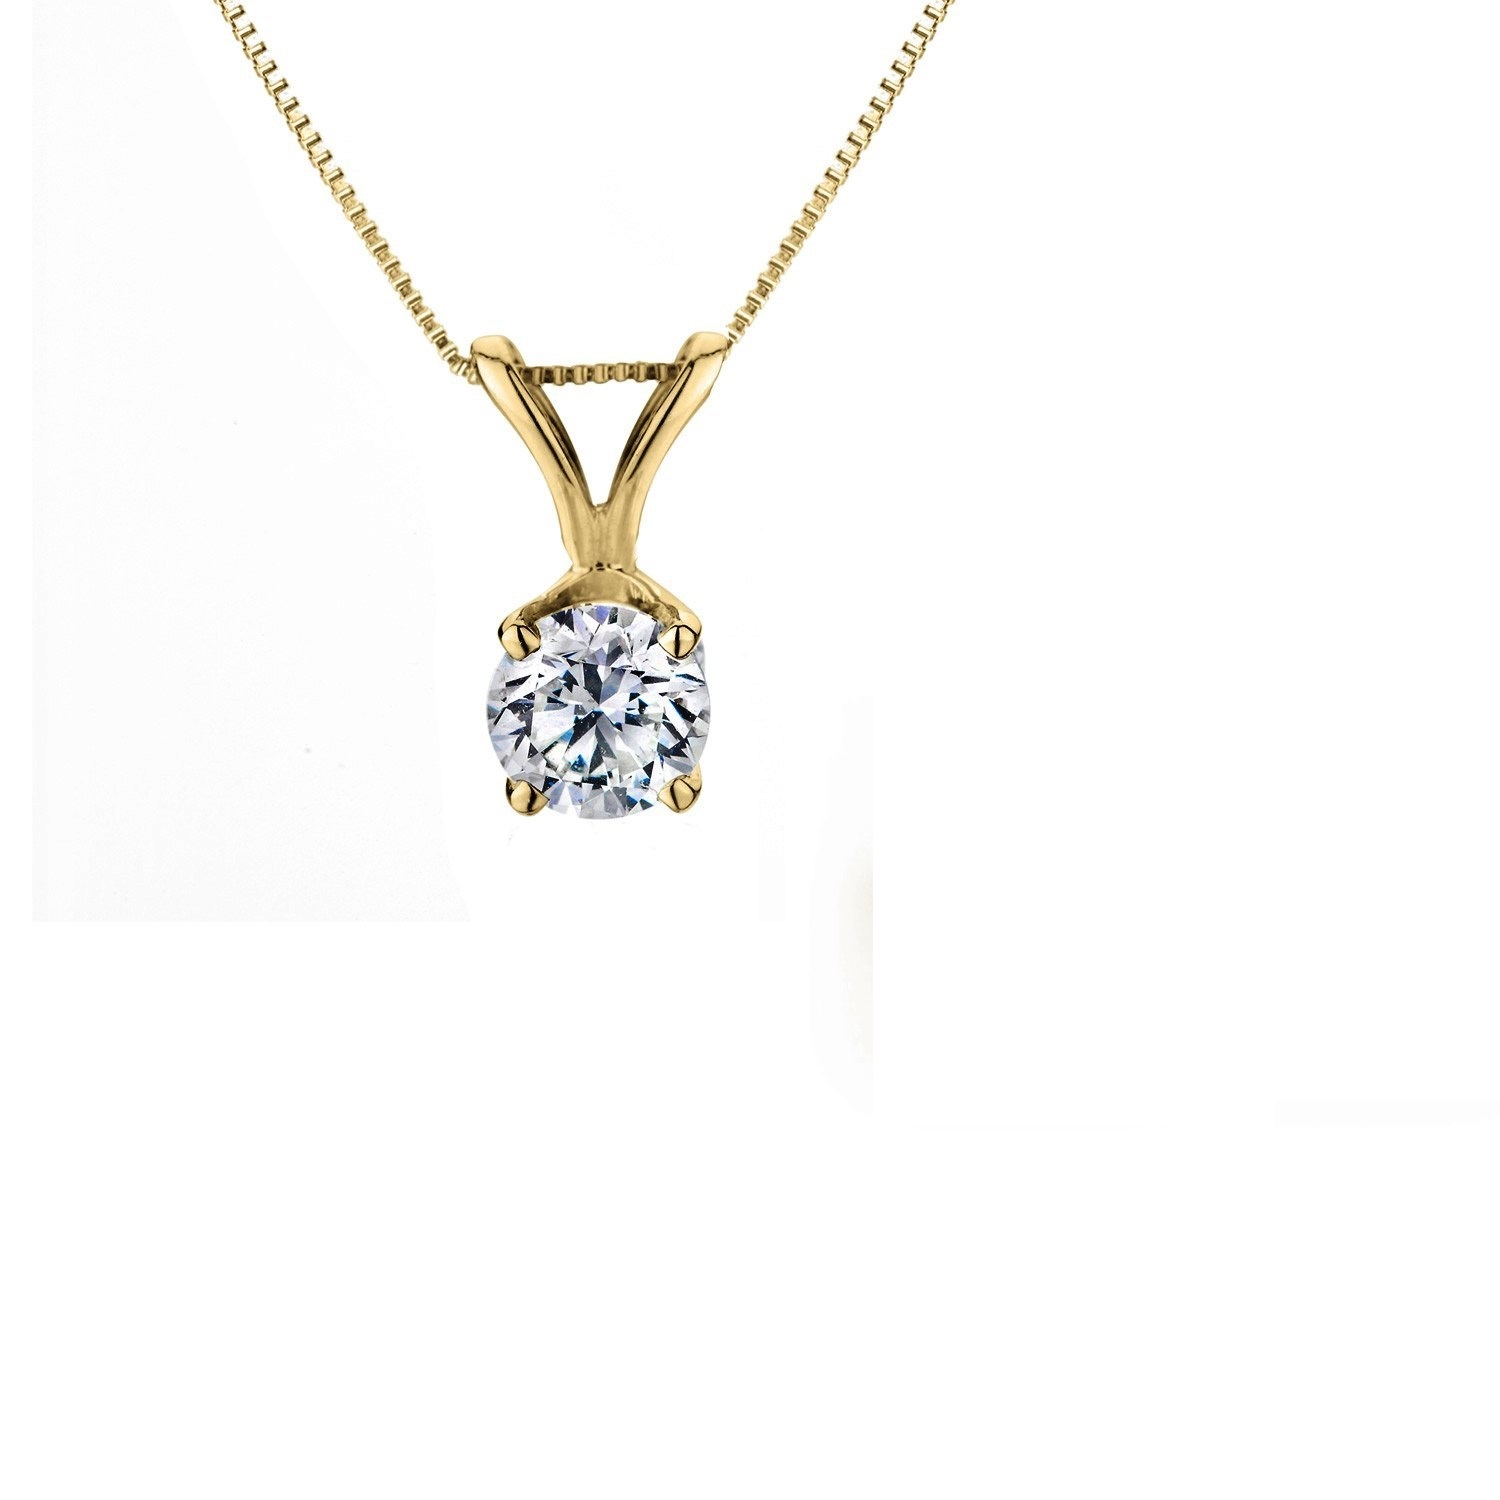 Genuine 1 2 Carat Natural Solitaire Round Cut Diamond 4 Prong Pendant Necklace In 14K Yellow Gold by Diamond Princess